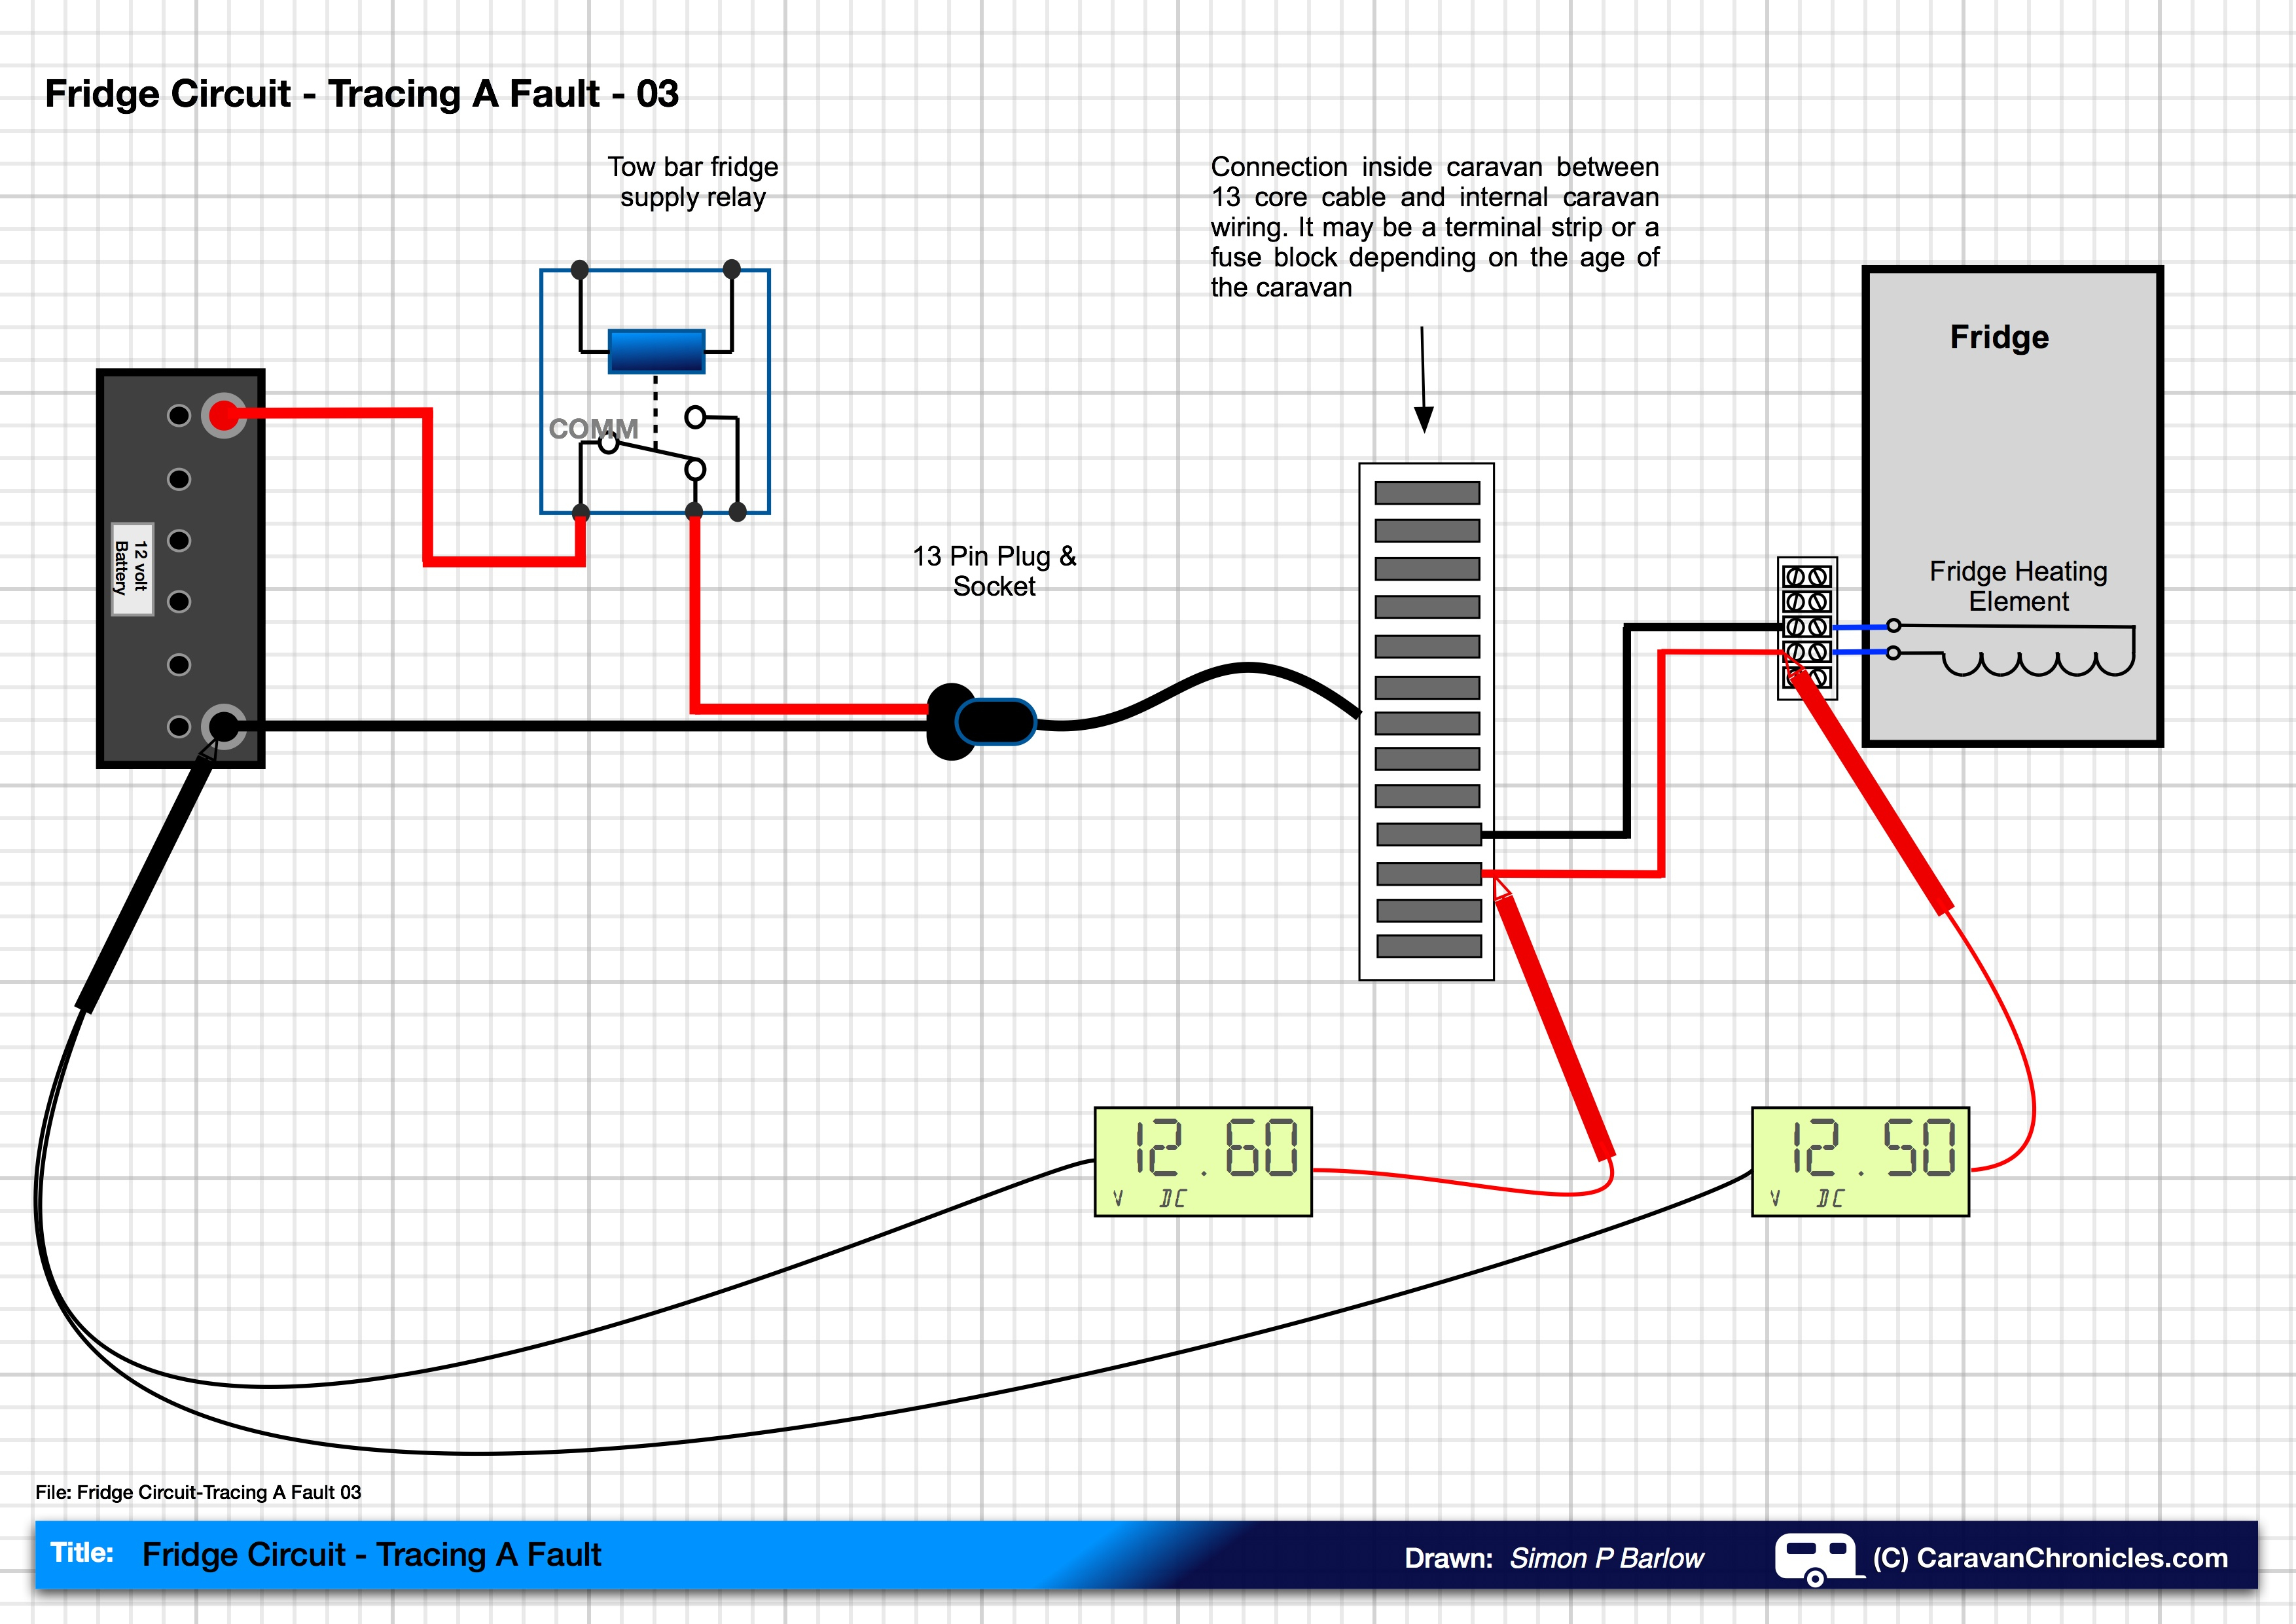 3 Way Fridge Wiring Diagram | Wiring Diagram - 12 Volt 3 Way Switch Wiring Diagram